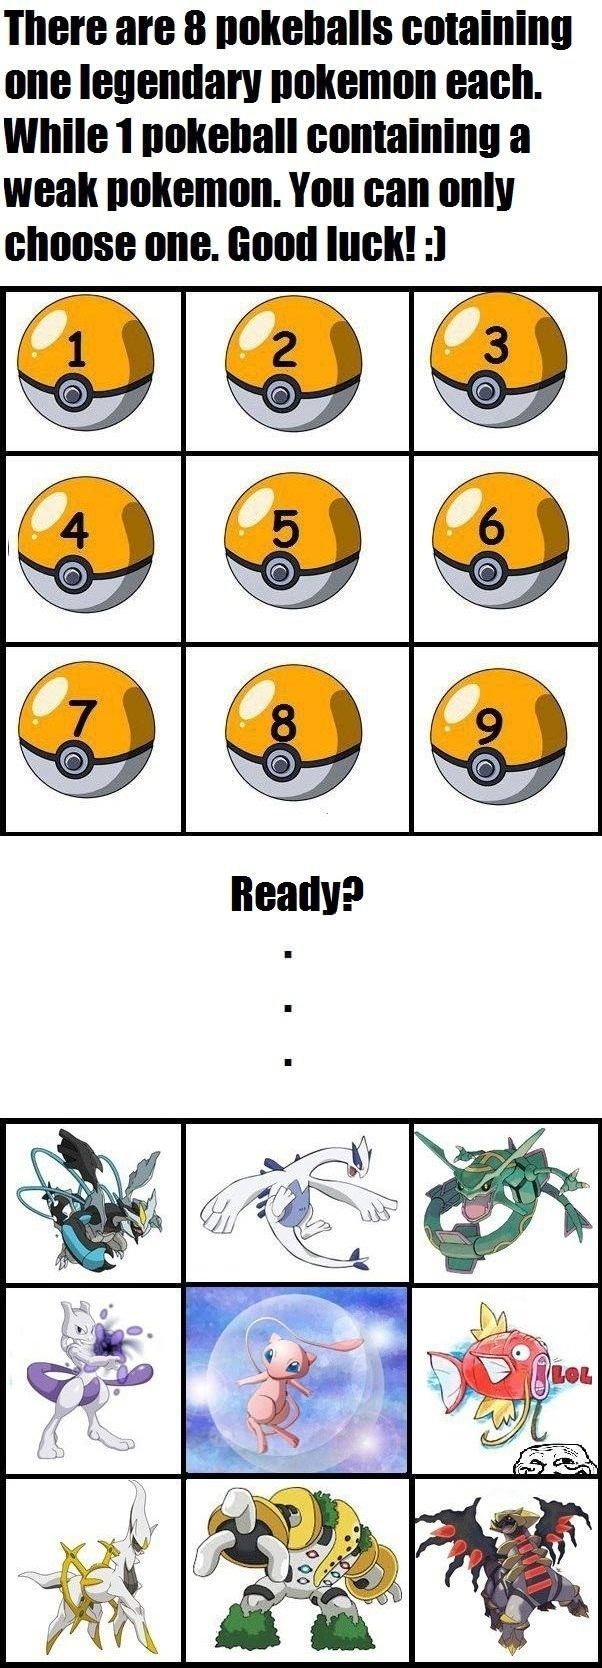 Choose wisely, trainers! // funny pictures - funny photos - funny images - funny pics - funny quotes - #lol #humor #funnypictures